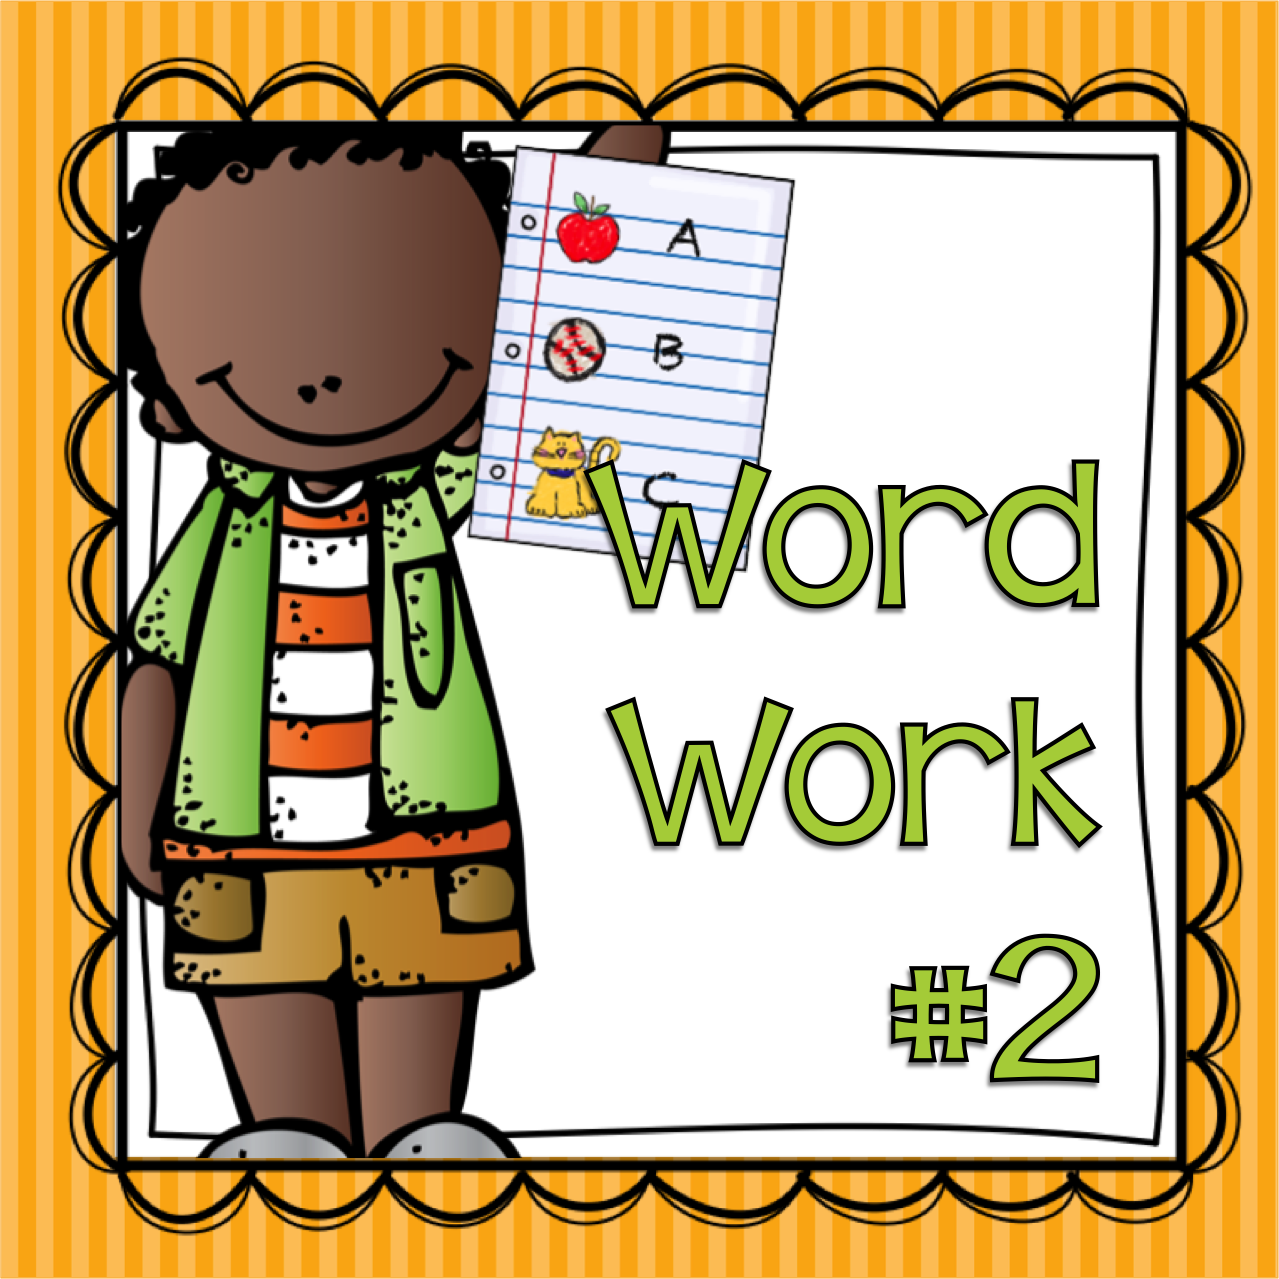 Daily 5 word work clipart clip art library 2